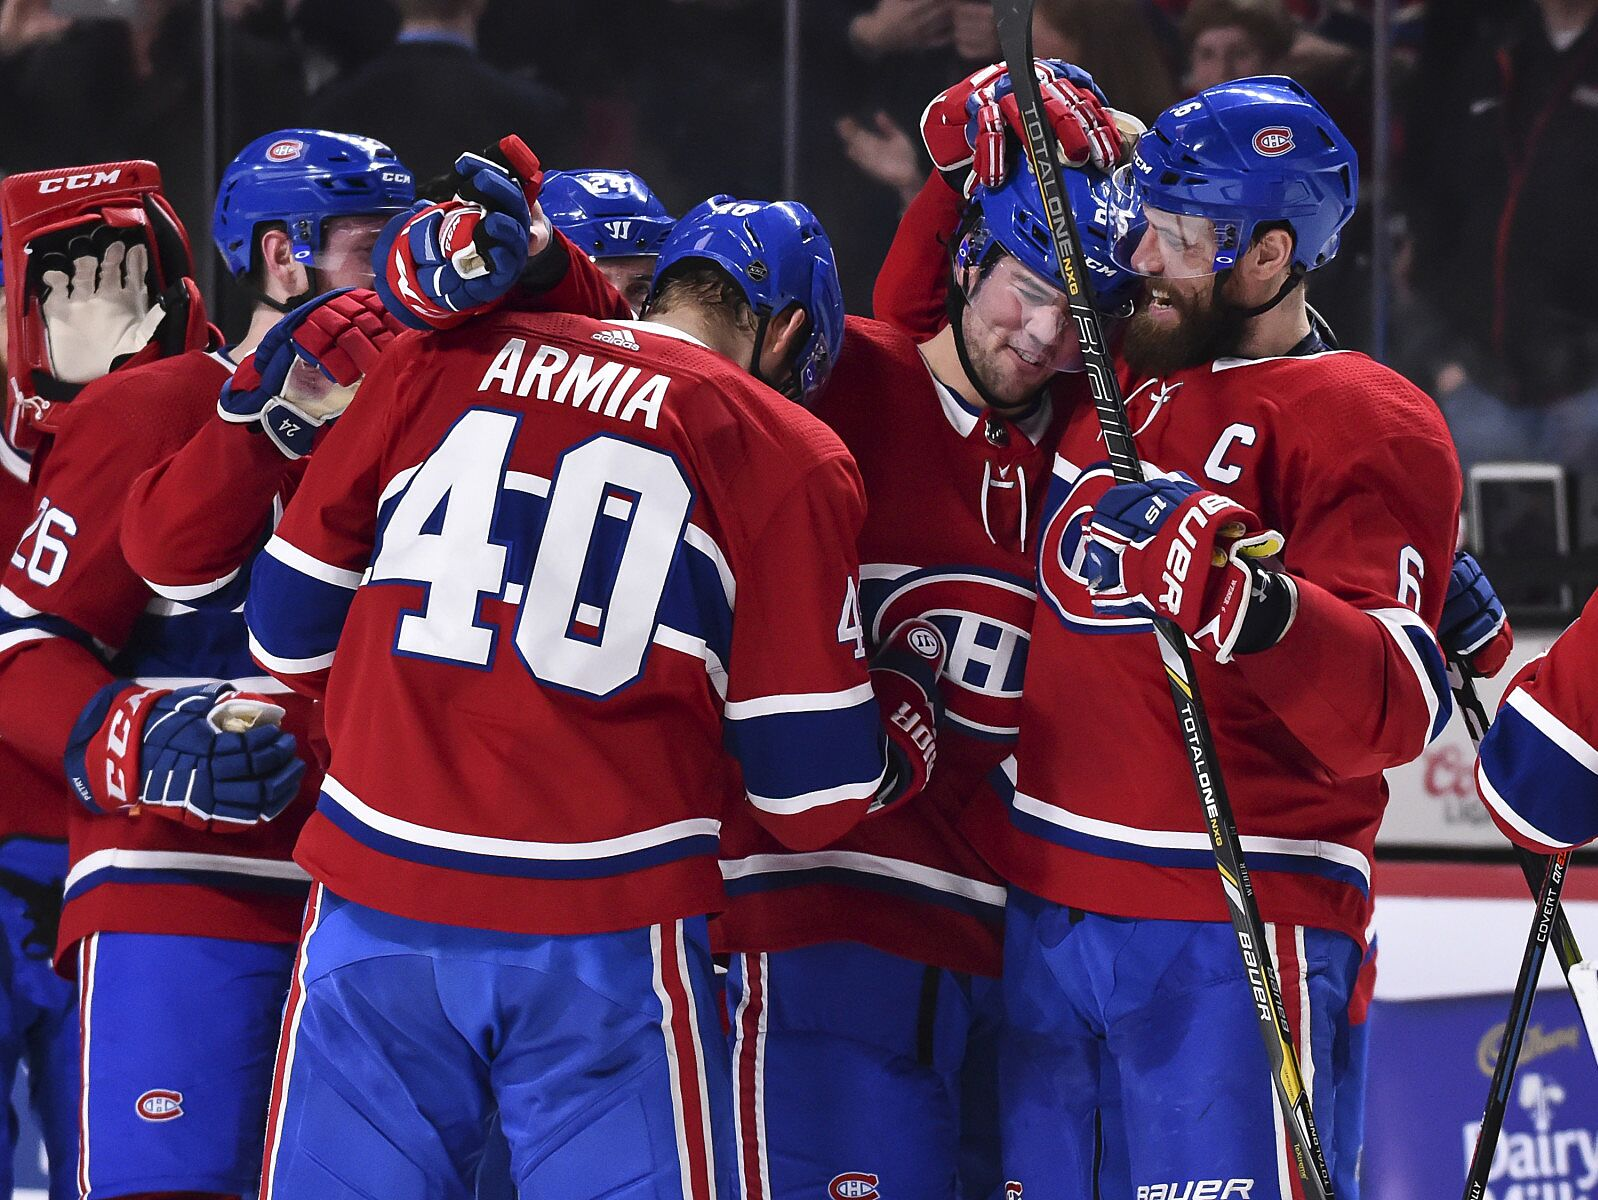 Montreal Canadiens: Top 3 keys to making the Stanley Cup Playoffs